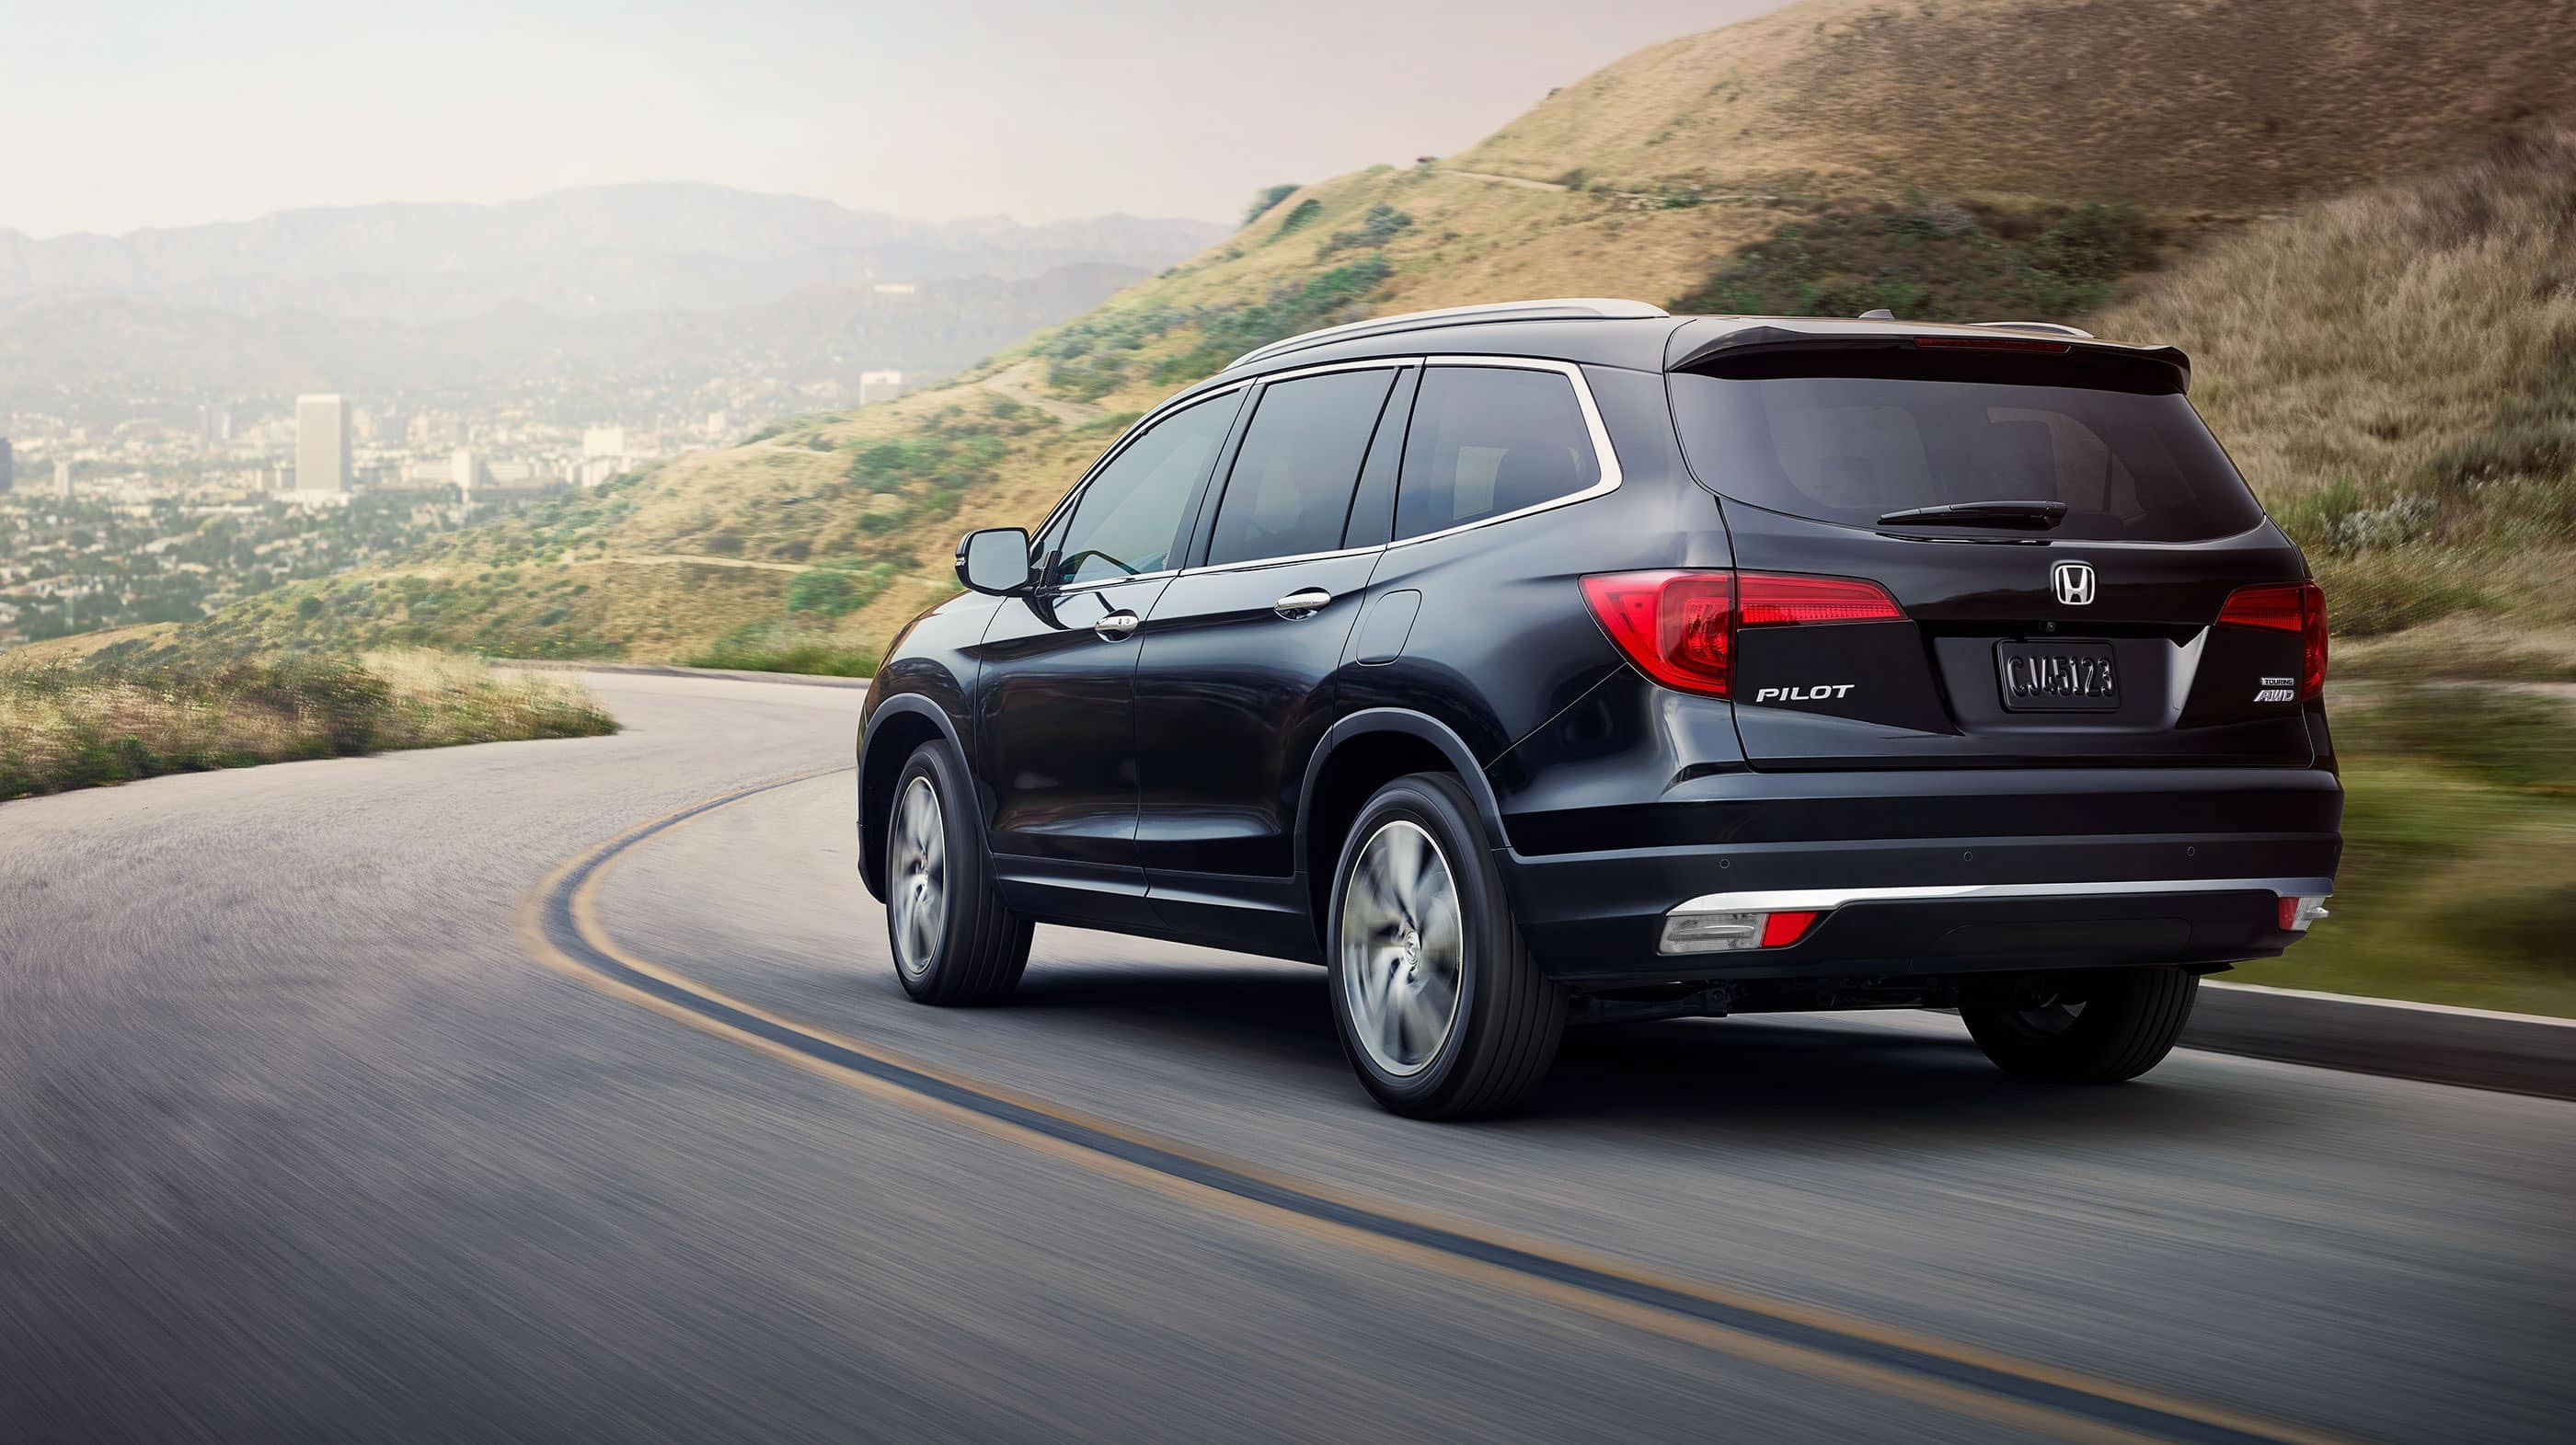 Iowa City - 2018 Honda Pilot Overview